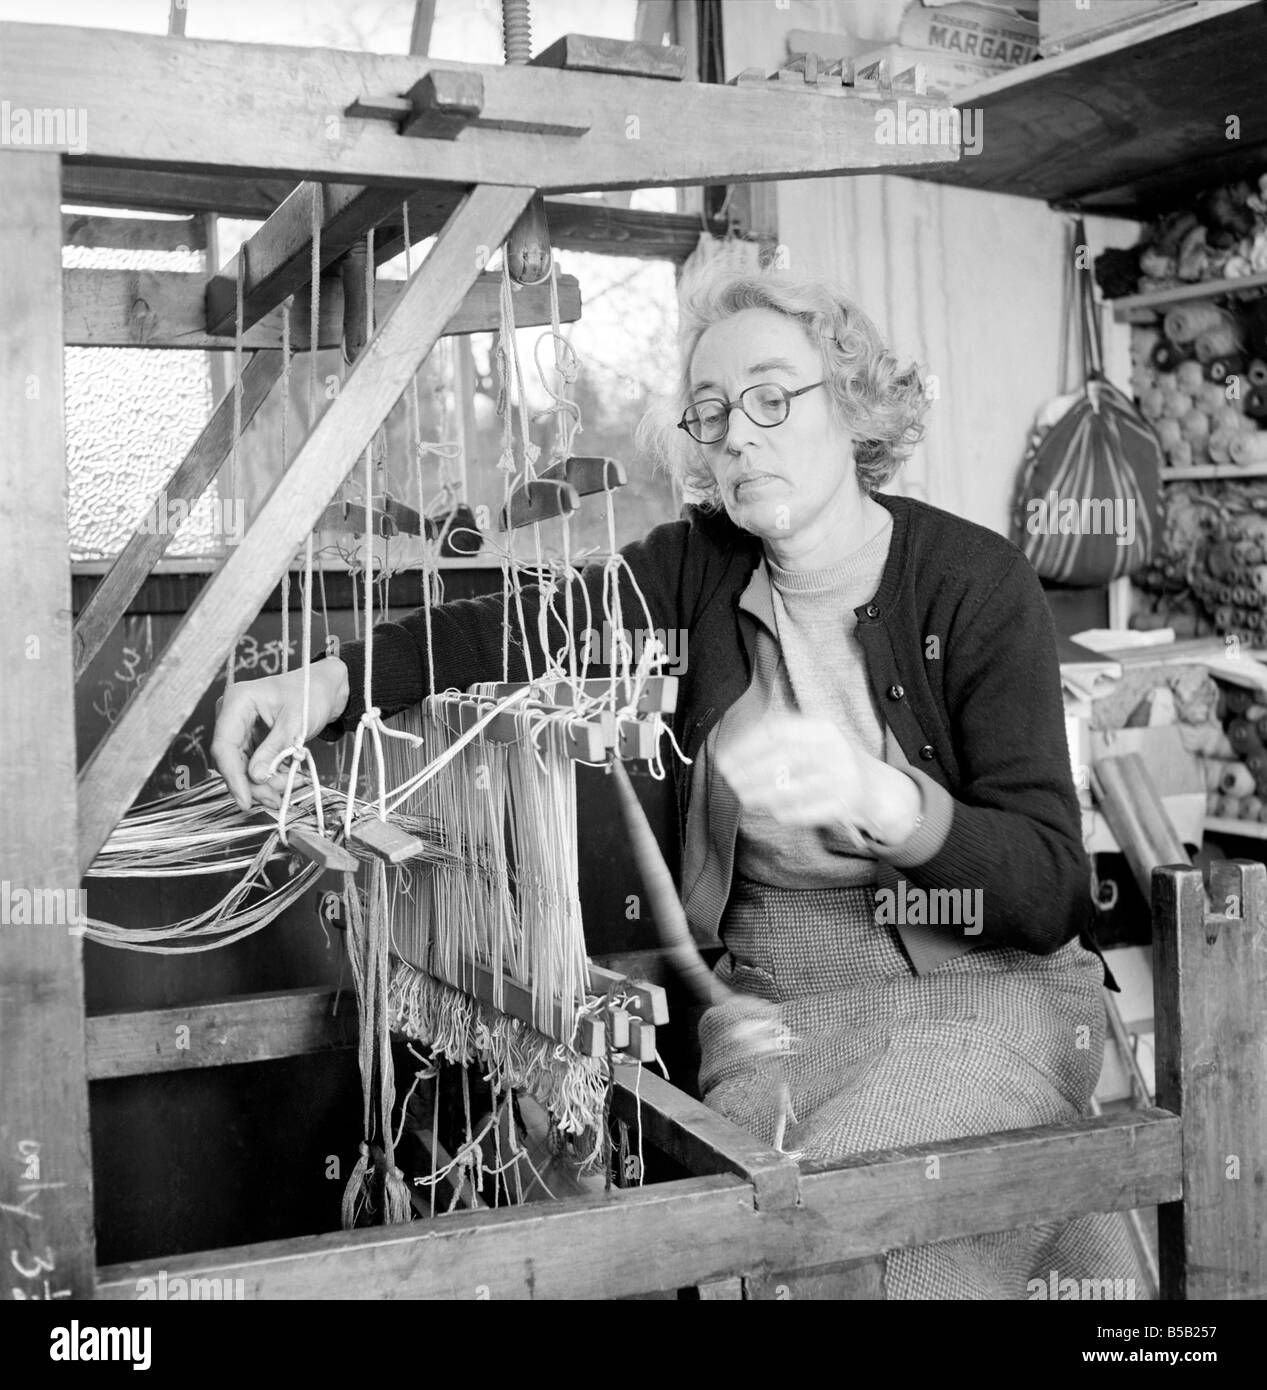 Woman seen here working at a loom weaving. 1955 - Stock Image